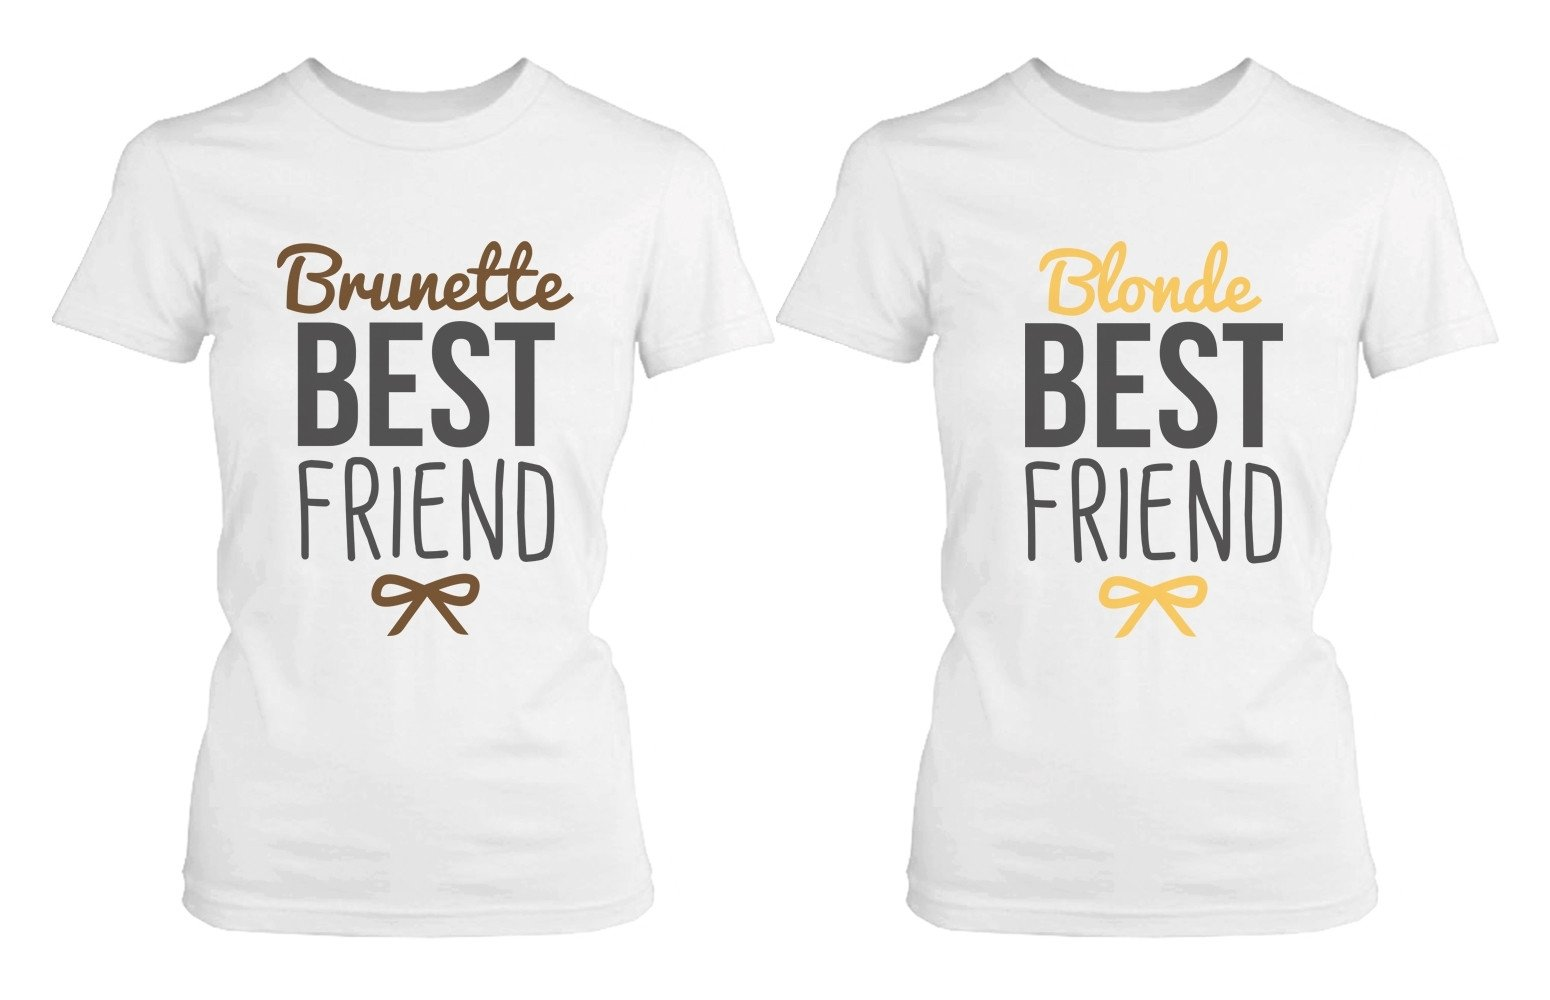 10 Gorgeous Best Friend T Shirt Ideas cute best friend gift ideas fun best friend shirts unique bff